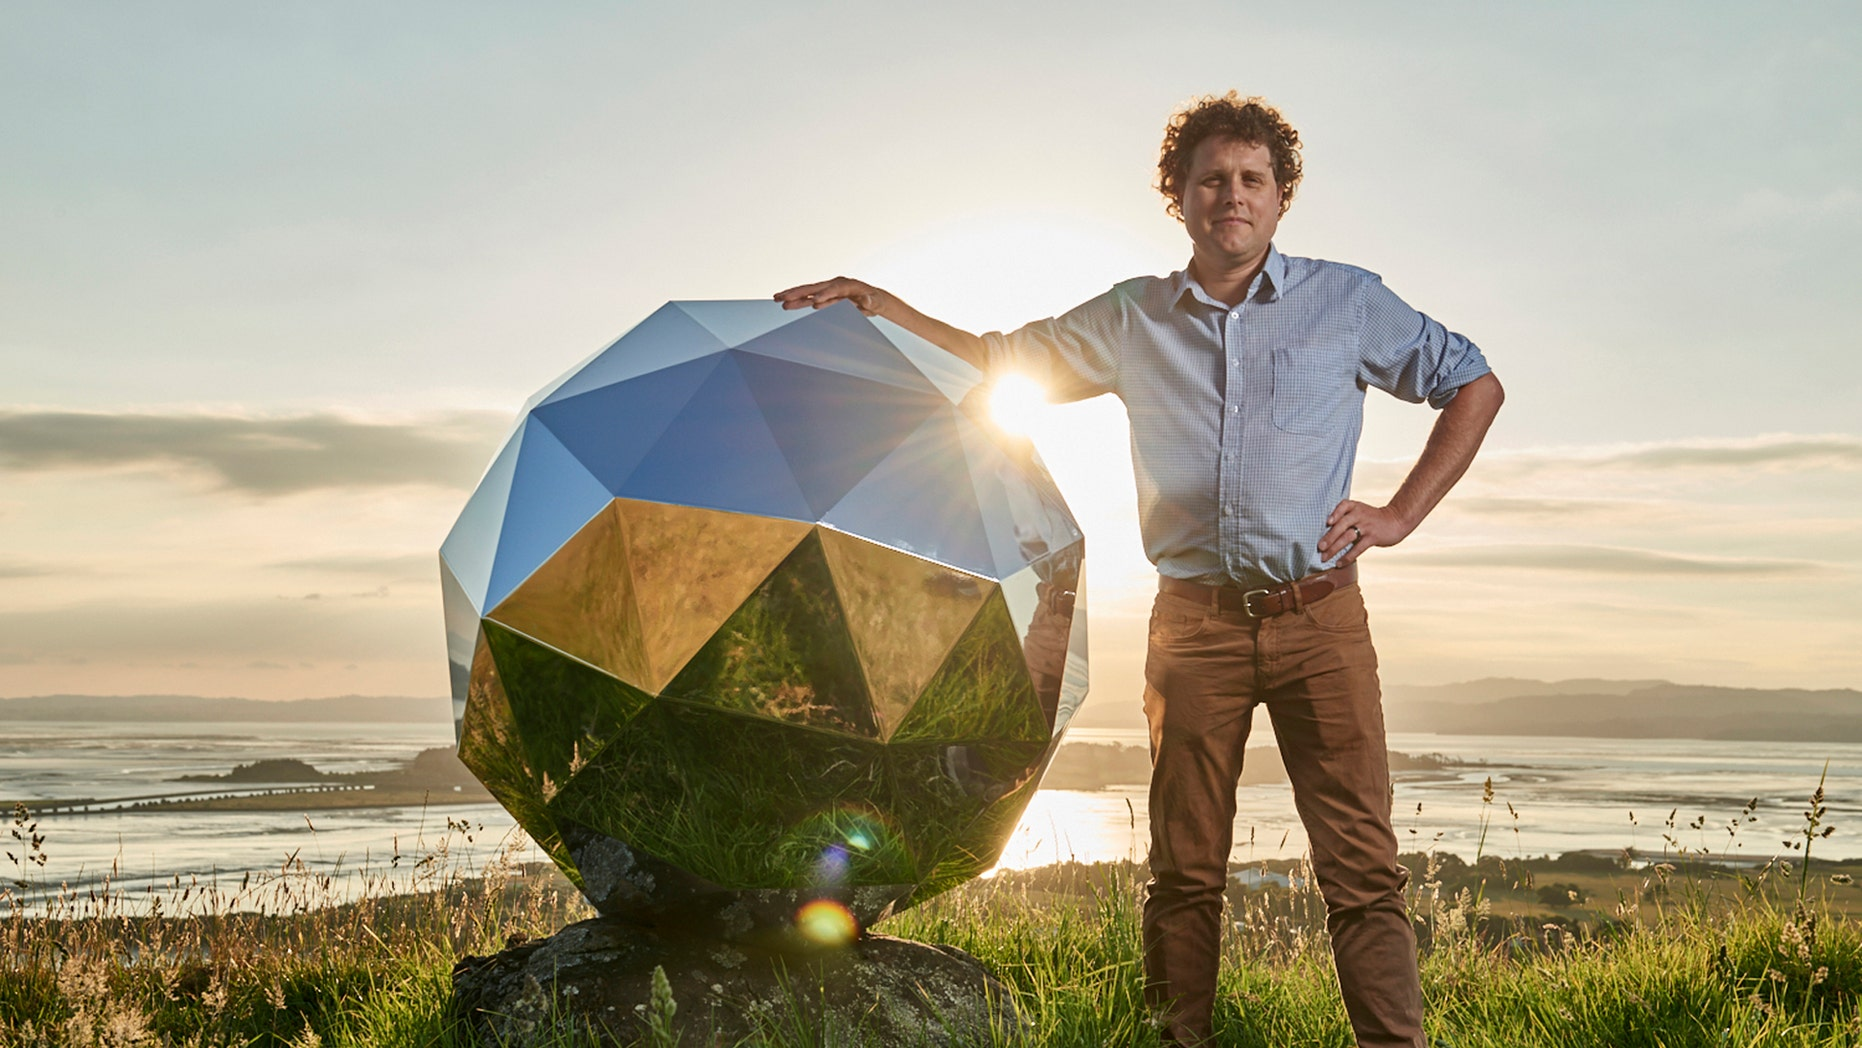 """File photo - In this Nov. 2017 photo provided by Rocket Lab, Rocket Lab founder and CEO Peter Beck is pictured with his """"Humanity Star"""" in Auckland, New Zealand. (Rocket Lab via AP)"""